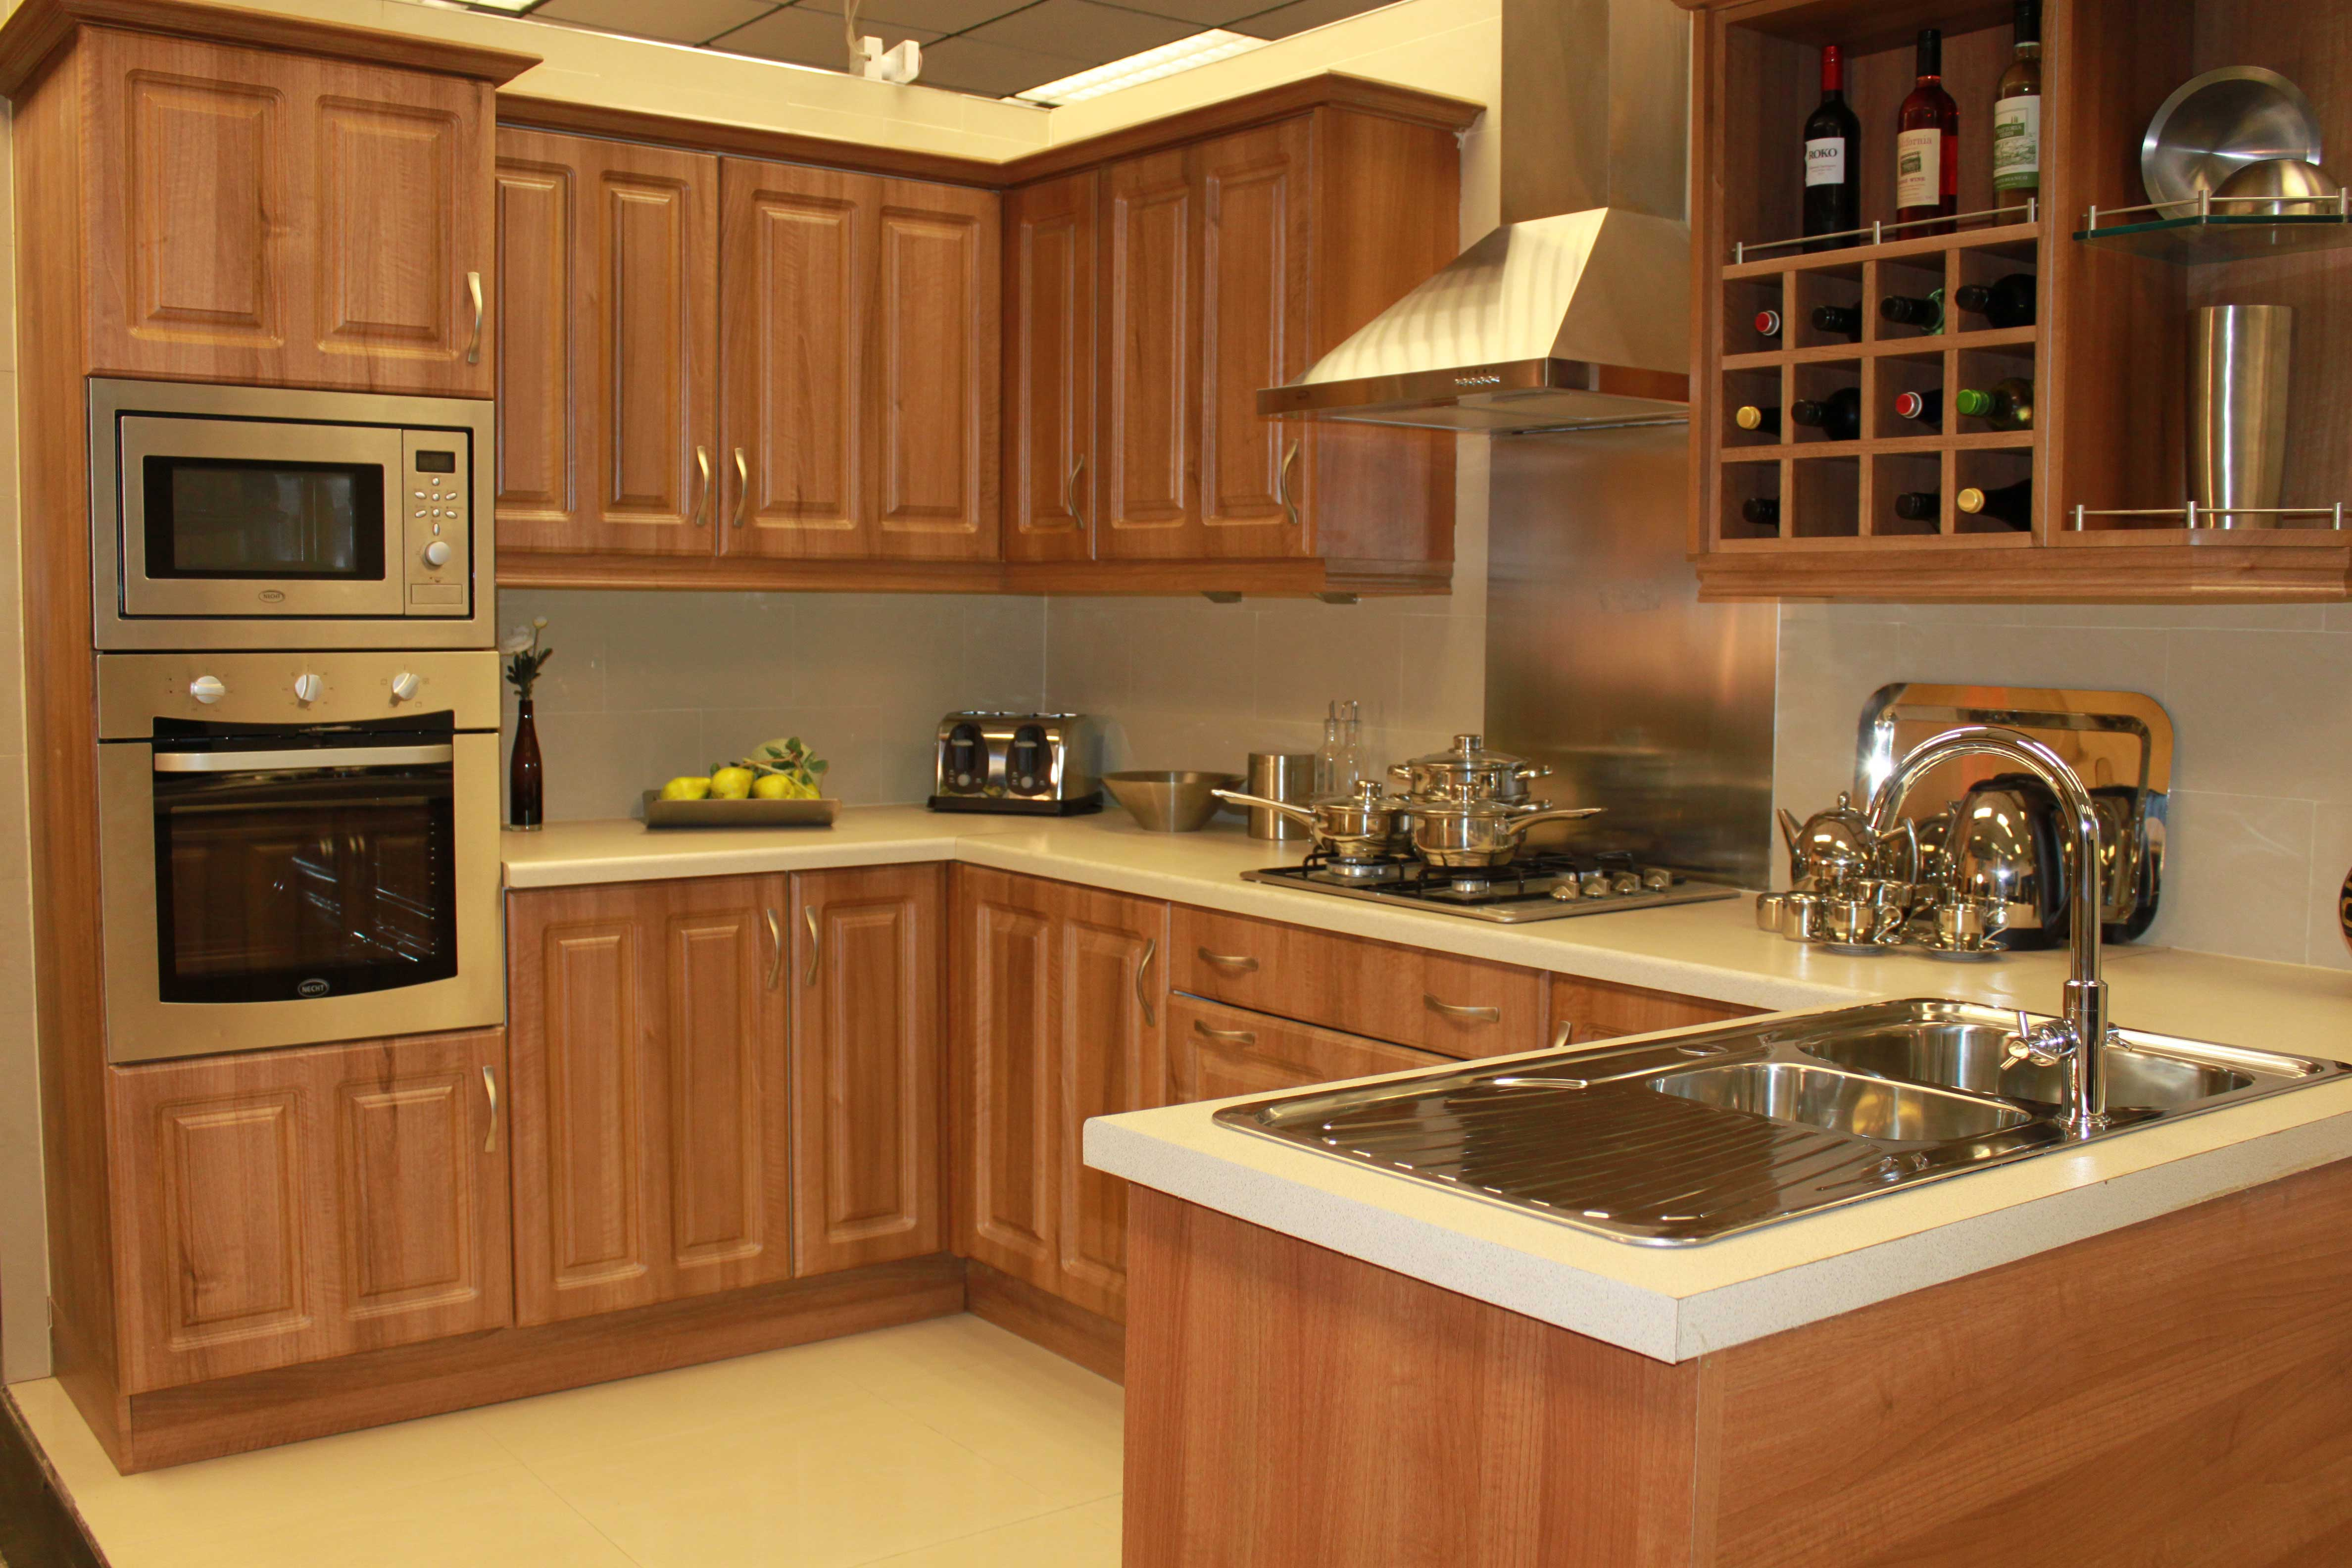 Kitchens peeblesshire cheap kitchens peeblesshire for Gabinetes modernos para cocinas pequenas